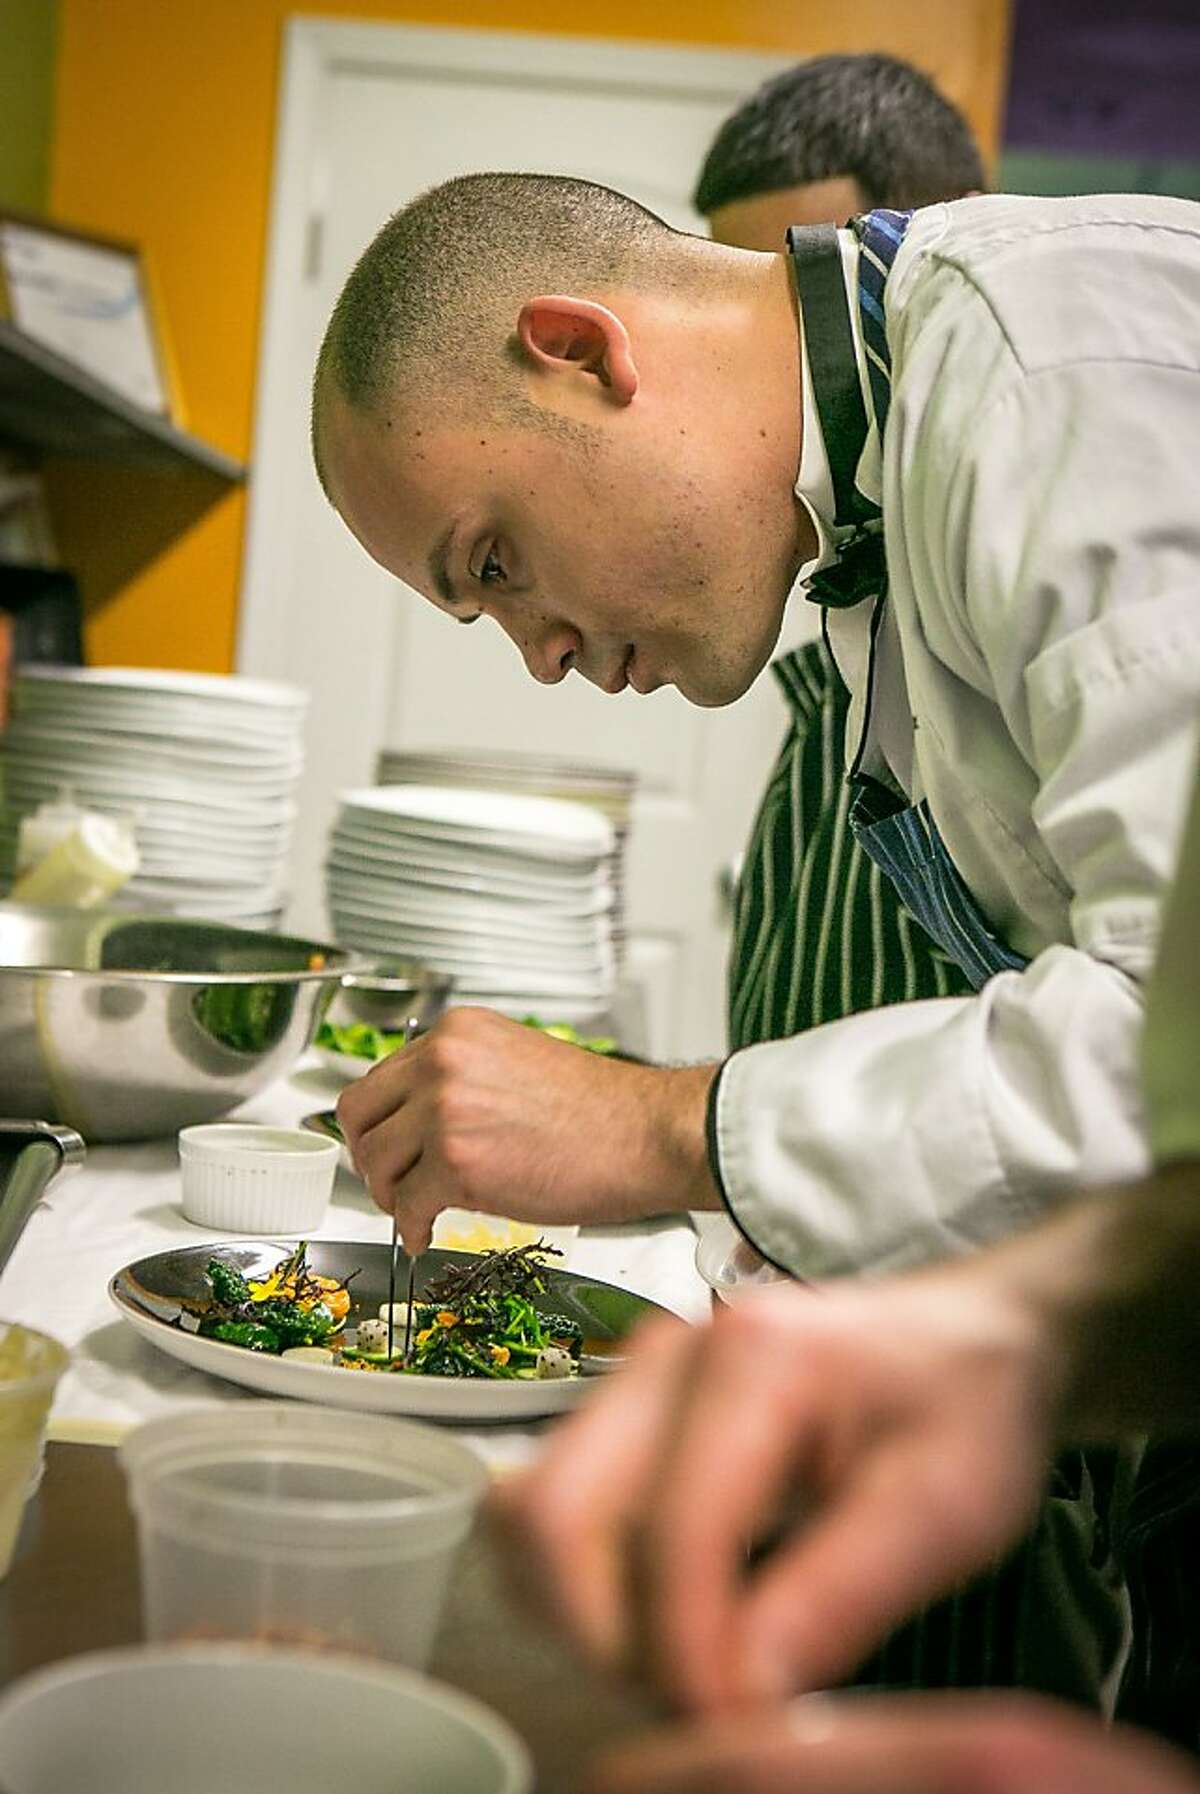 Chef Manny Torres Gimenez prepares a dish at Roxy's Cafe in San Francisco, Calif., is seen on Saturday, March 2nd, 2013.